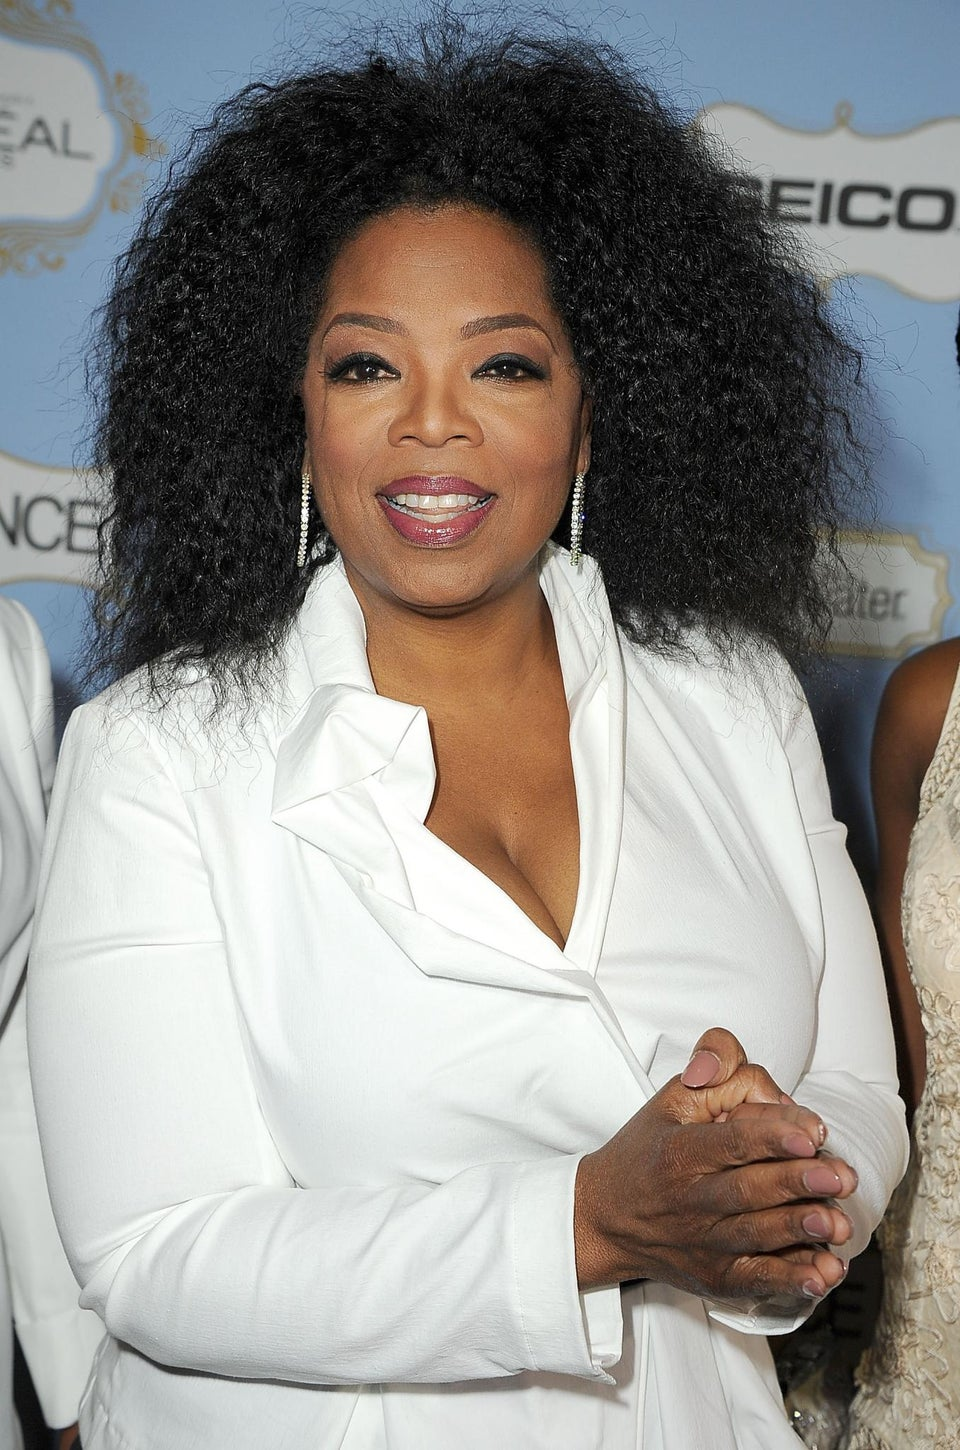 Oprah Winfrey Named Most Influential Celebrity by Forbes